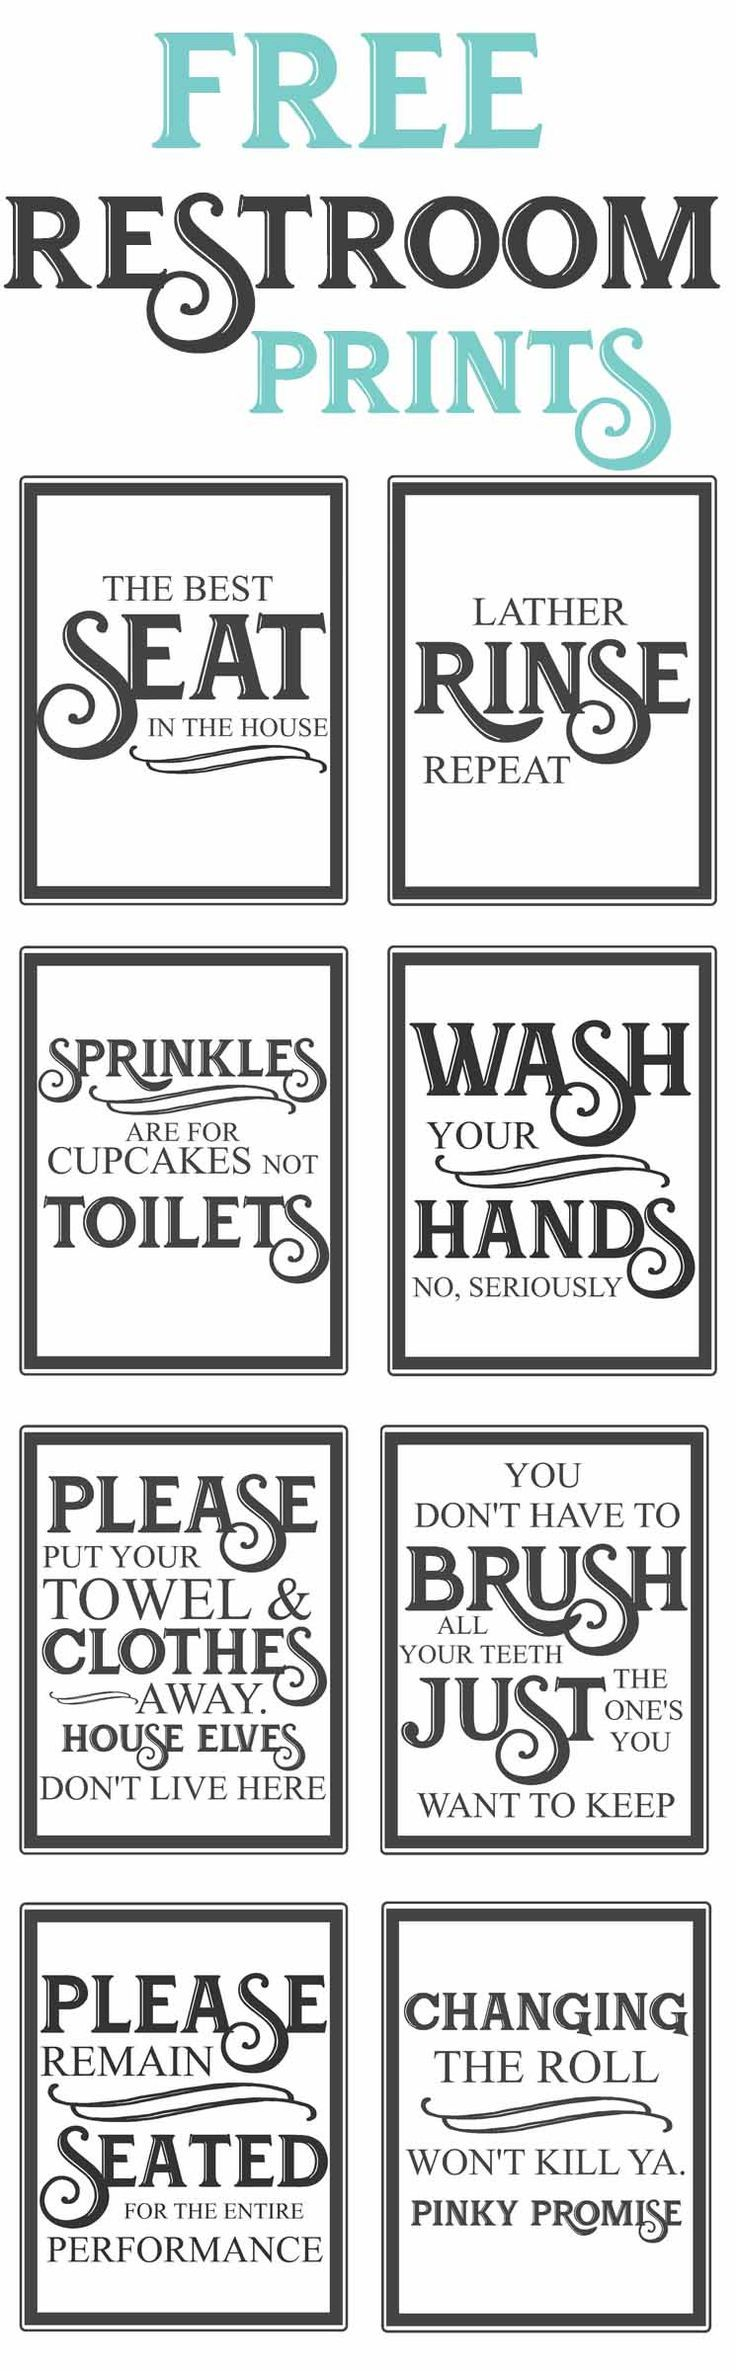 """Free Vintage inspired bathroom printables-funny quotes to hang up in the restroom-farmhouse """" rel=""""nofollow""""… - http://do-design.info/free-vintage-inspired-bathroom-printables-funny-quotes-to-hang-up-in-the-restroom-farmhouse-relnofollow/"""